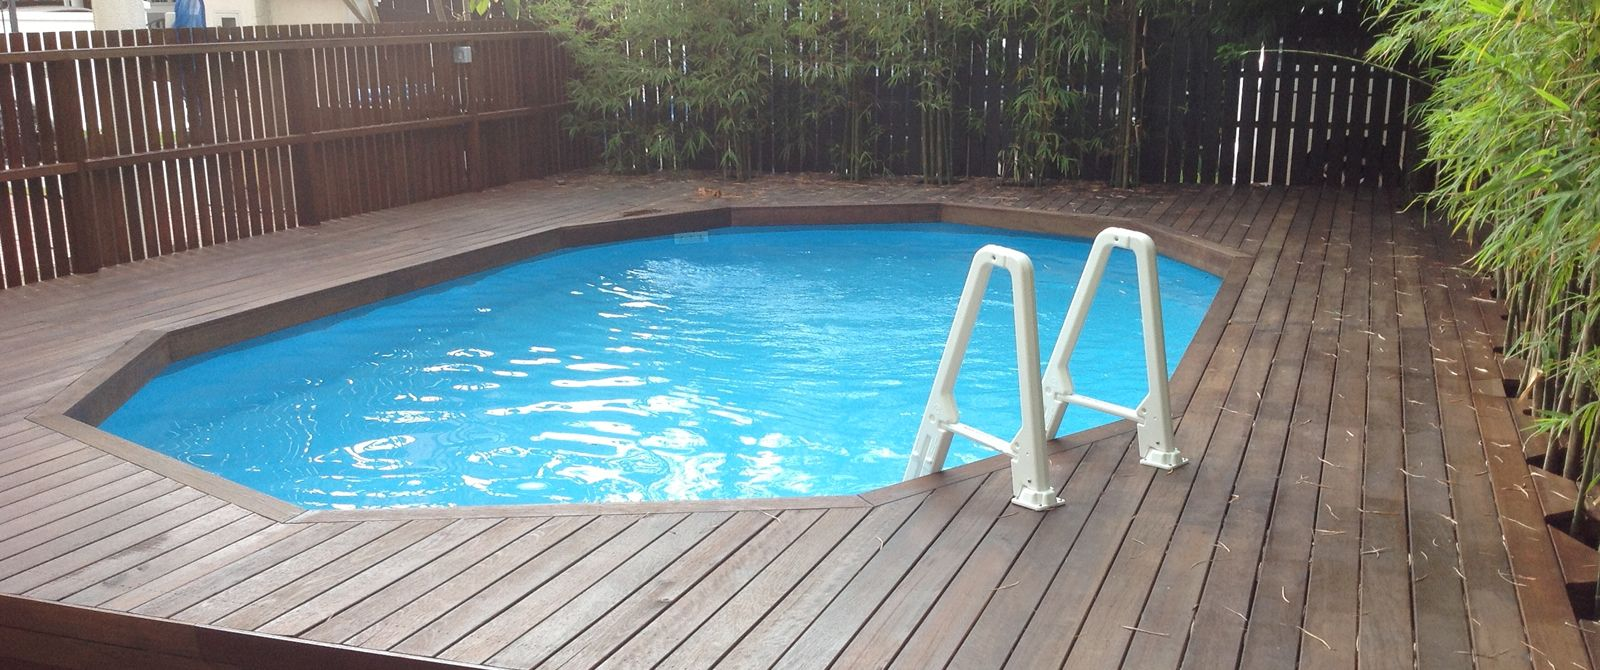 Hayward Pools Services Quality Home Singapore Smartexpat